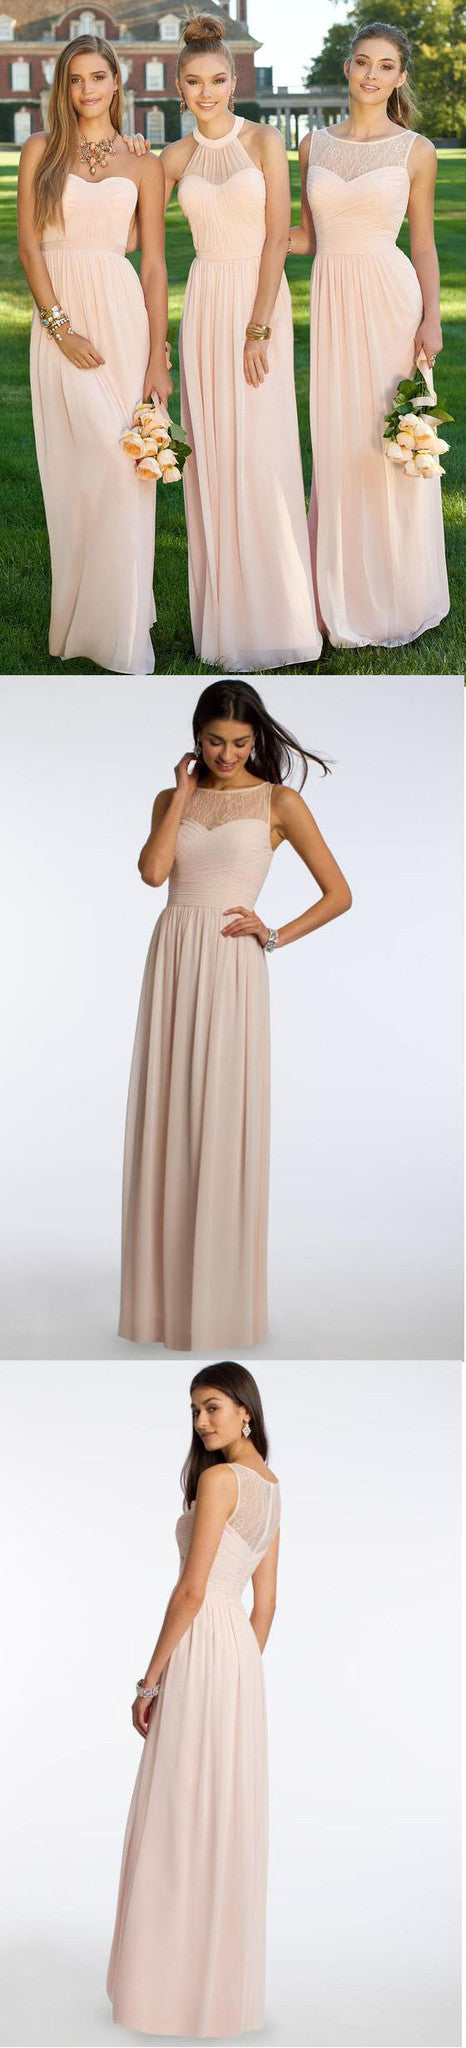 Blush Pink Mismatched Styles Modern Long Cheap Bridesmaid Dresses, BG51310 - Bubble Gown